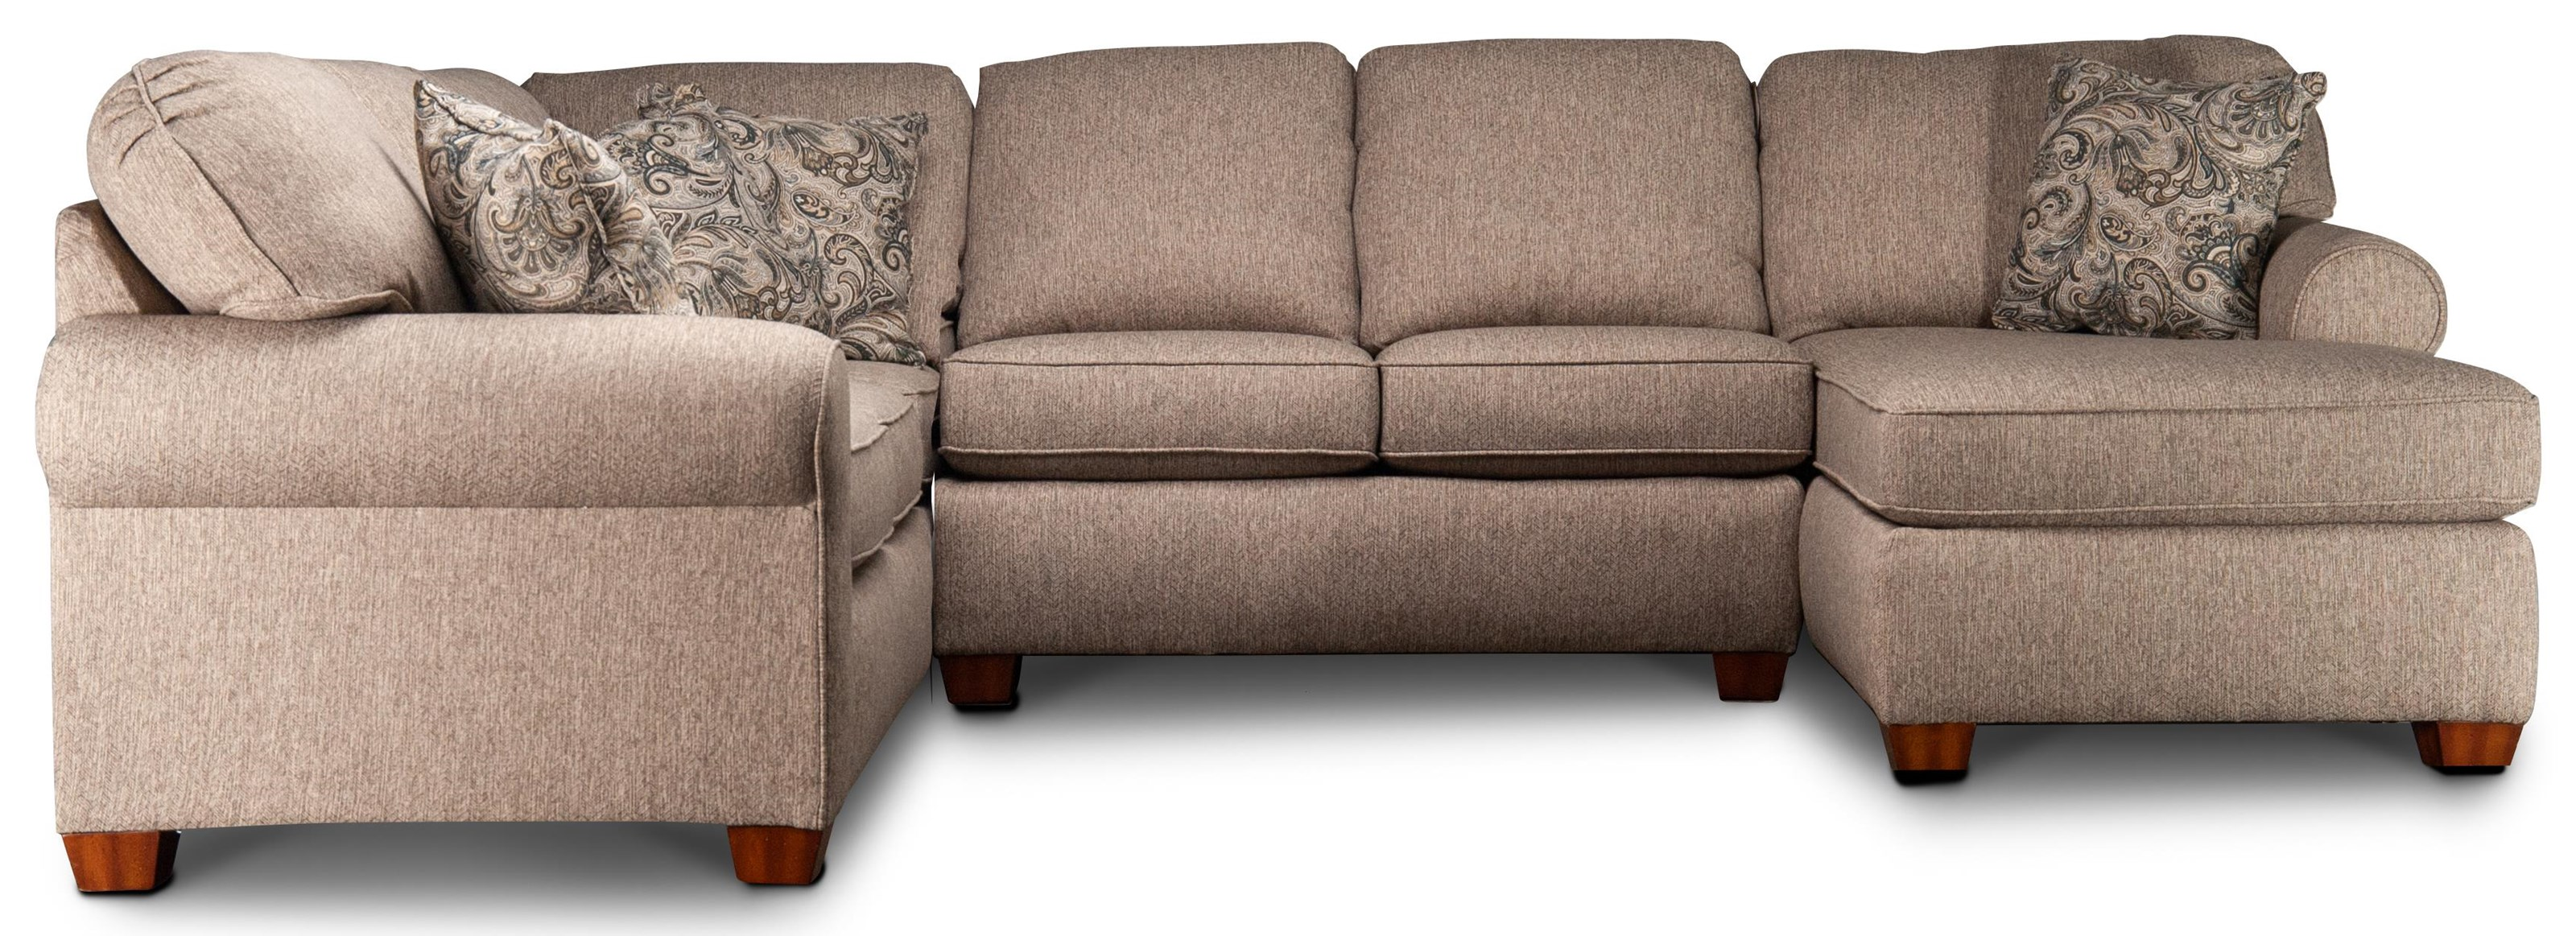 Oriana Oriana Sectional Sofa with Chaise by Flexsteel Wynwood Collection at Morris Home